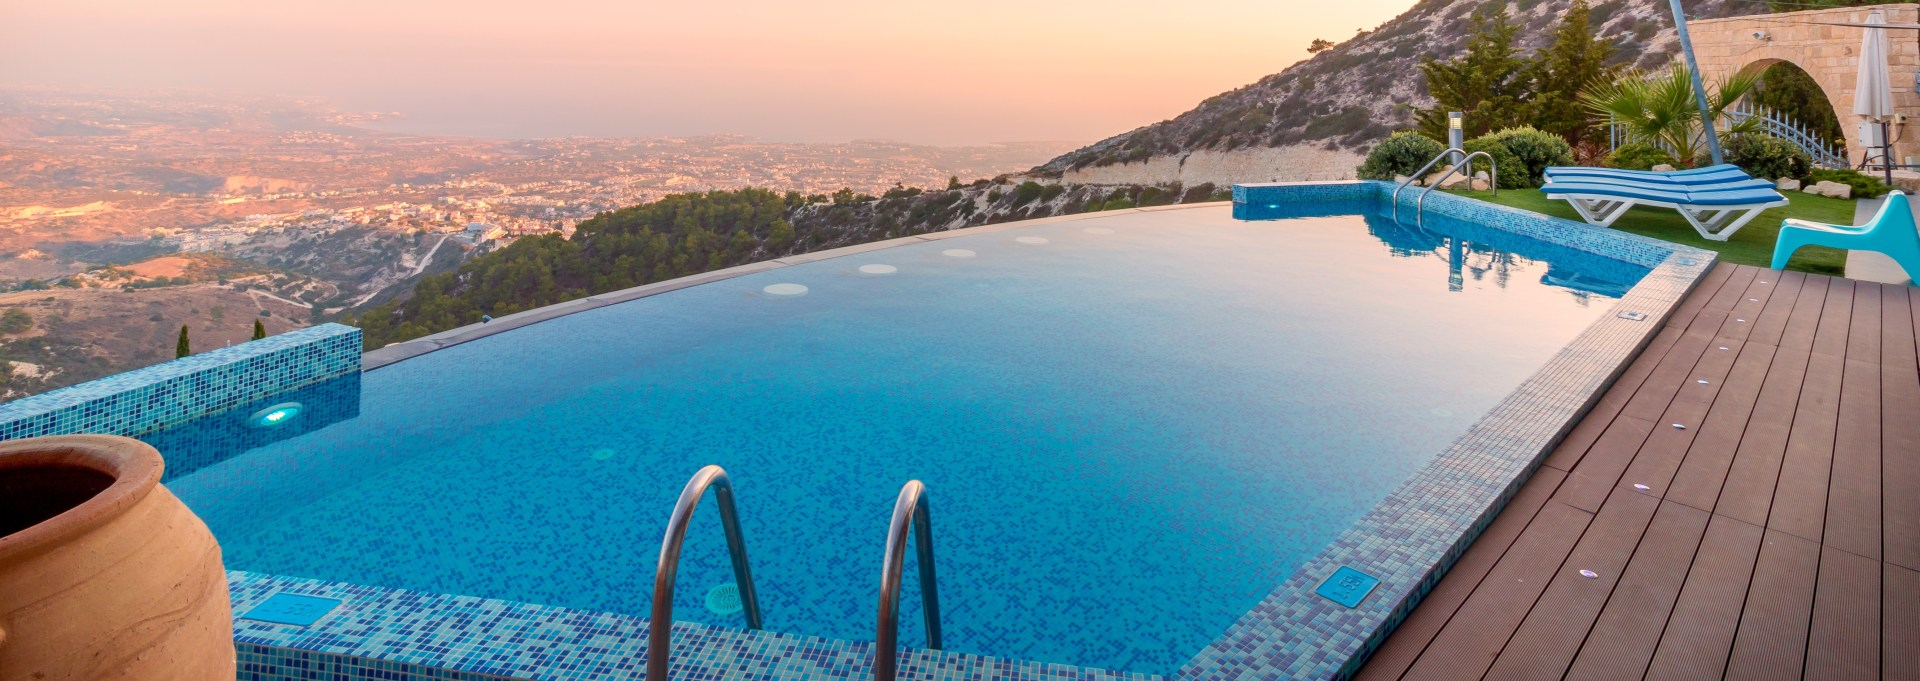 bgs pools and spas prices of fibreglass and concrete swimming pools ...